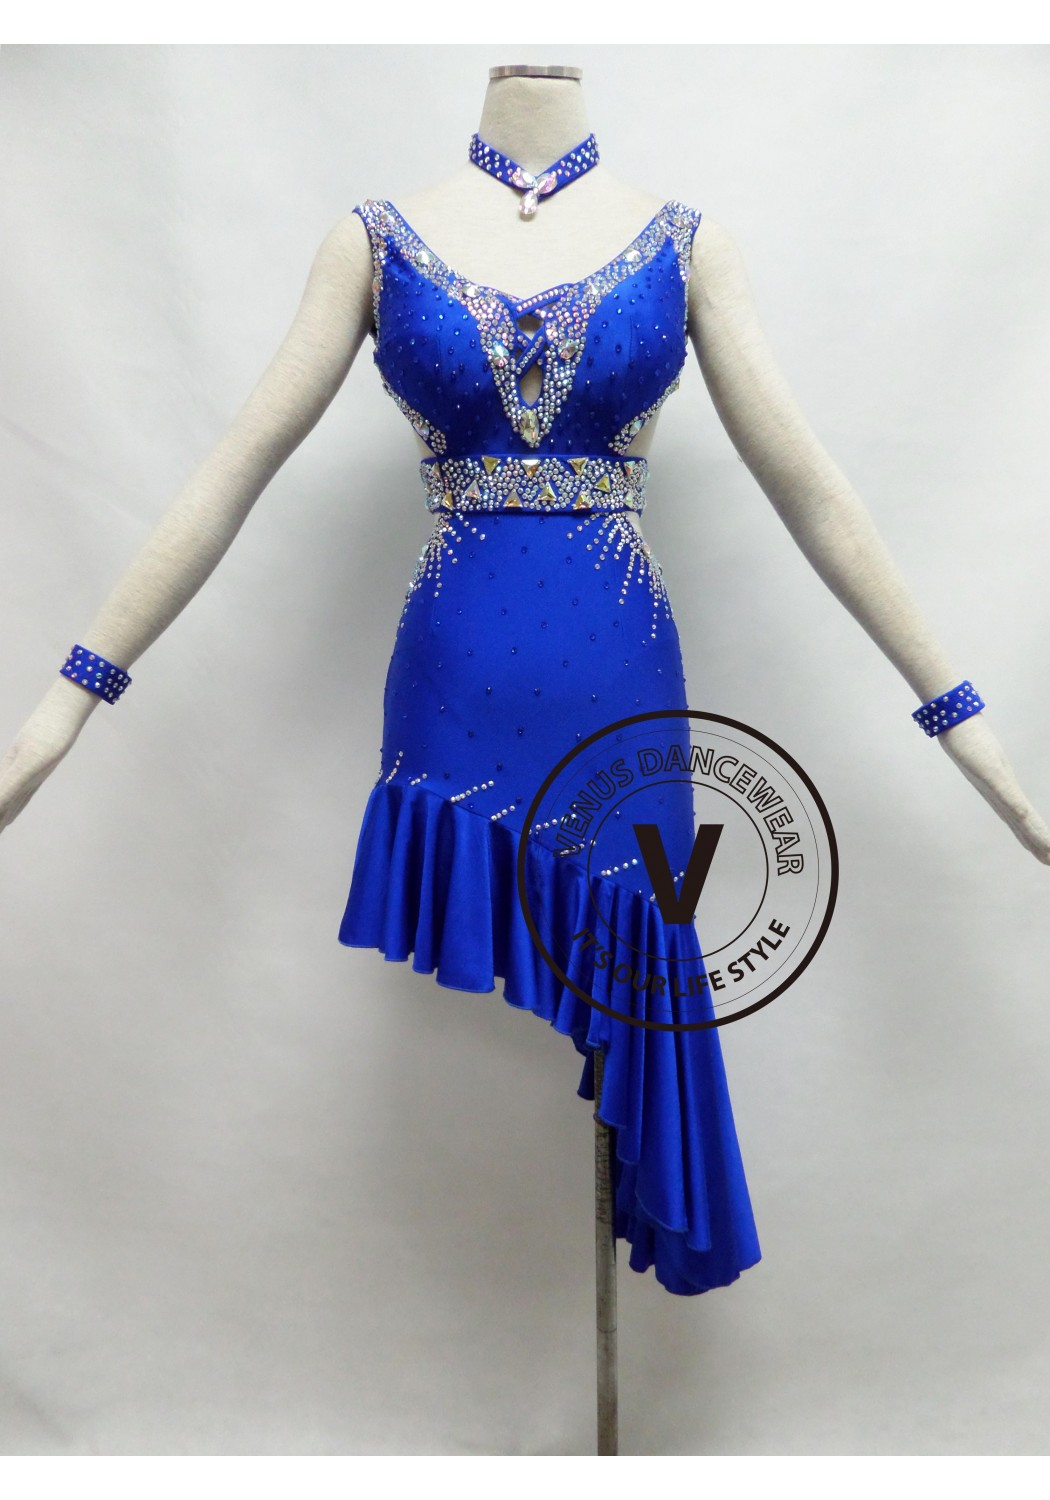 Royal Blue Competition Latin Rhythm Dancing Dress